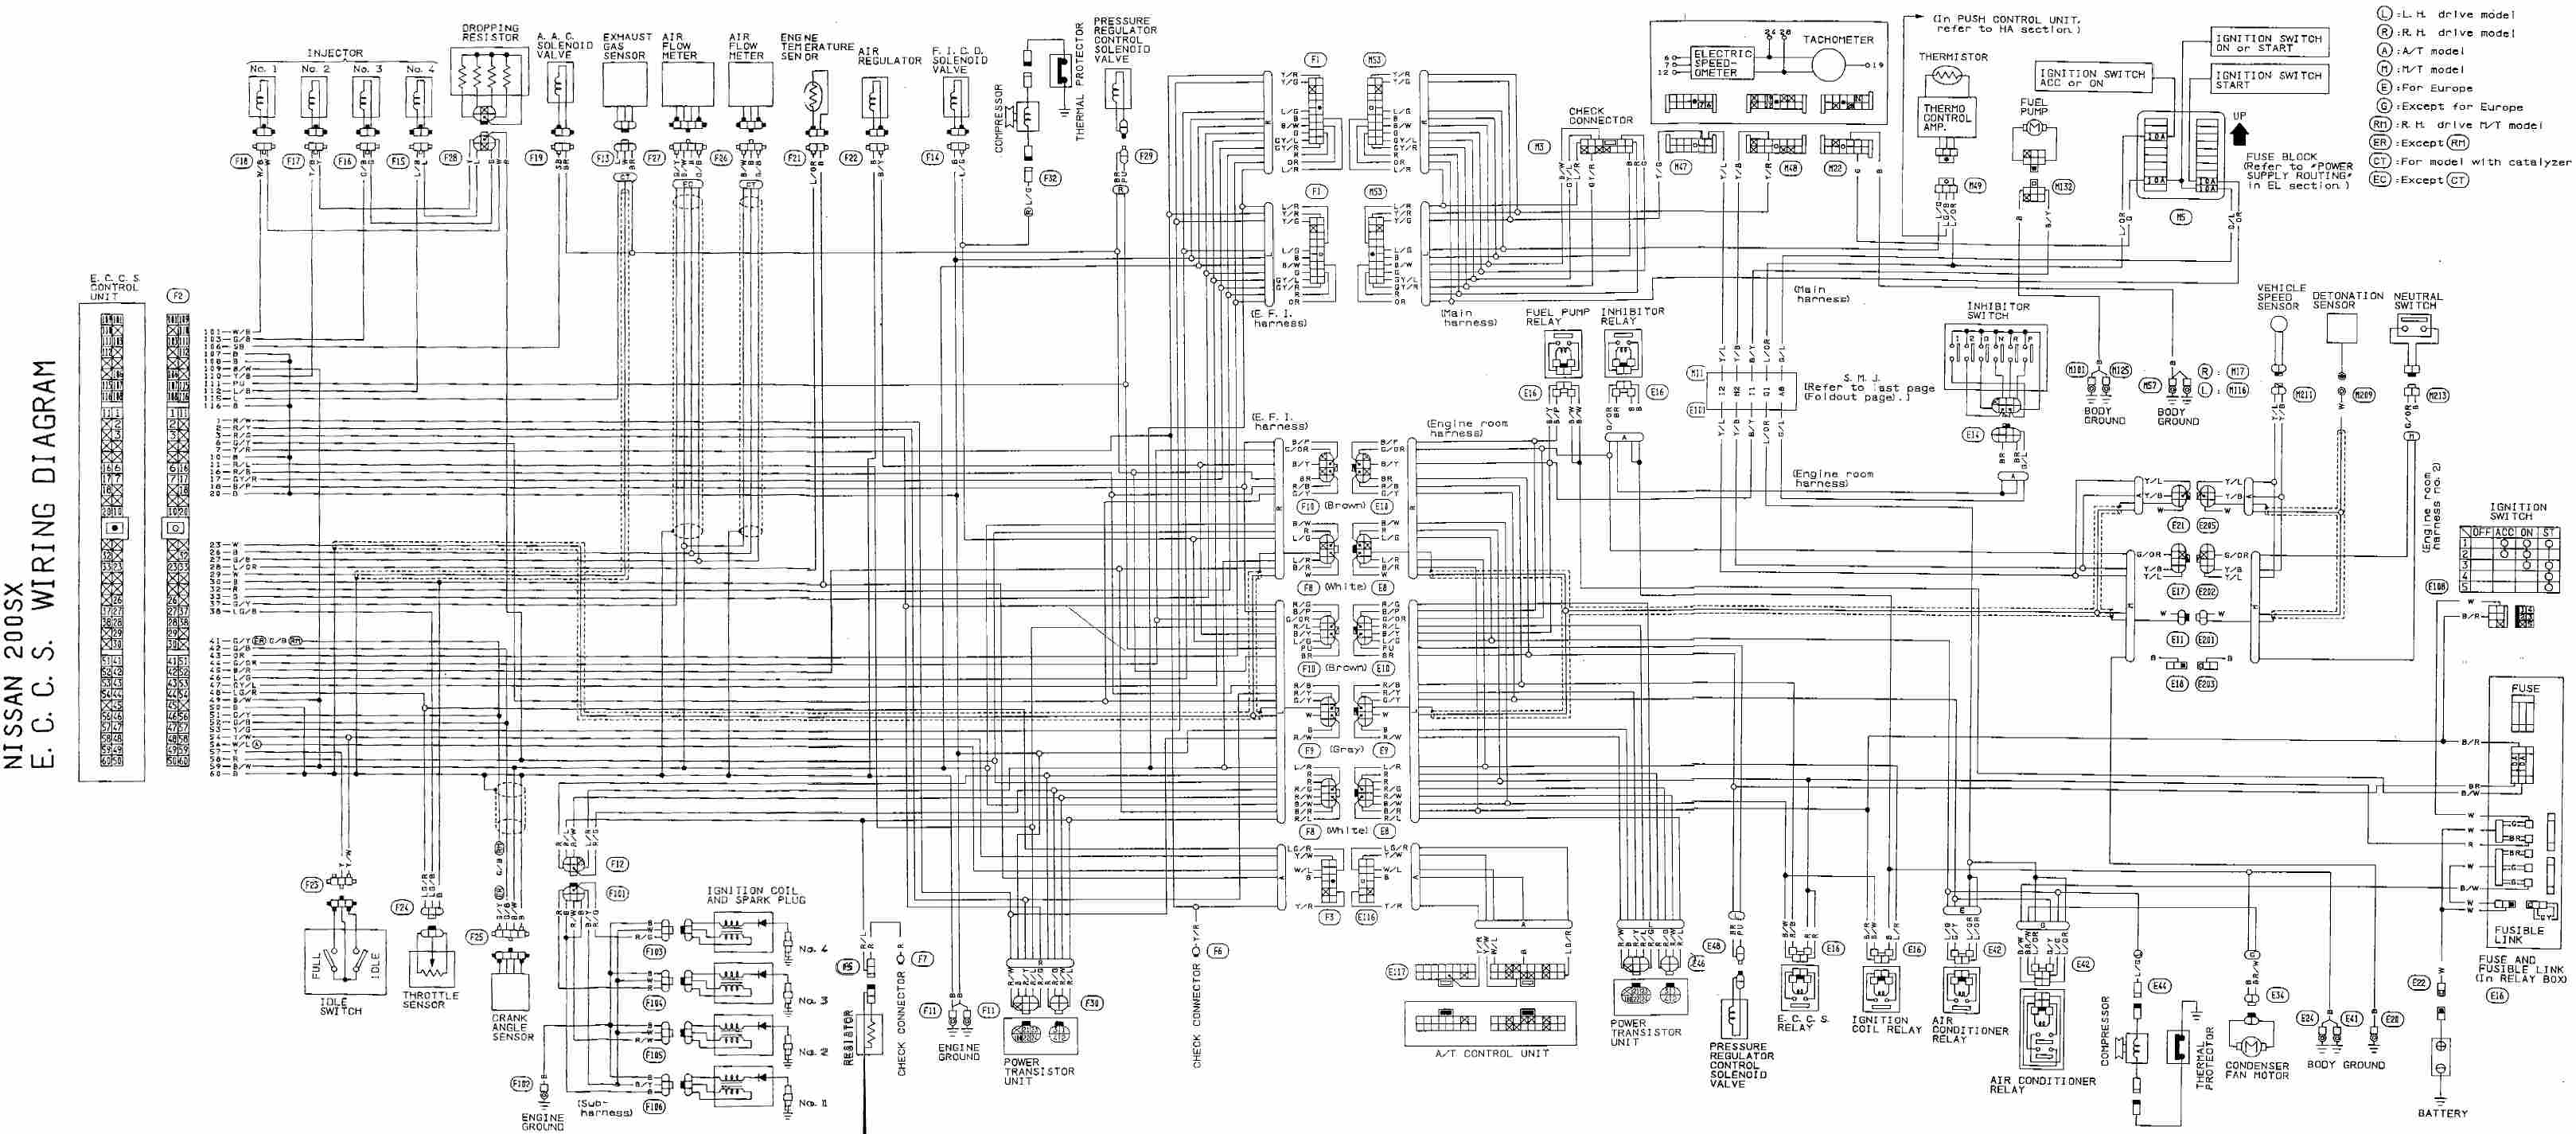 nissan wiring diagram wiring diagrams box atlas wiring diagram nissan wiring diagram [ 3237 x 1425 Pixel ]